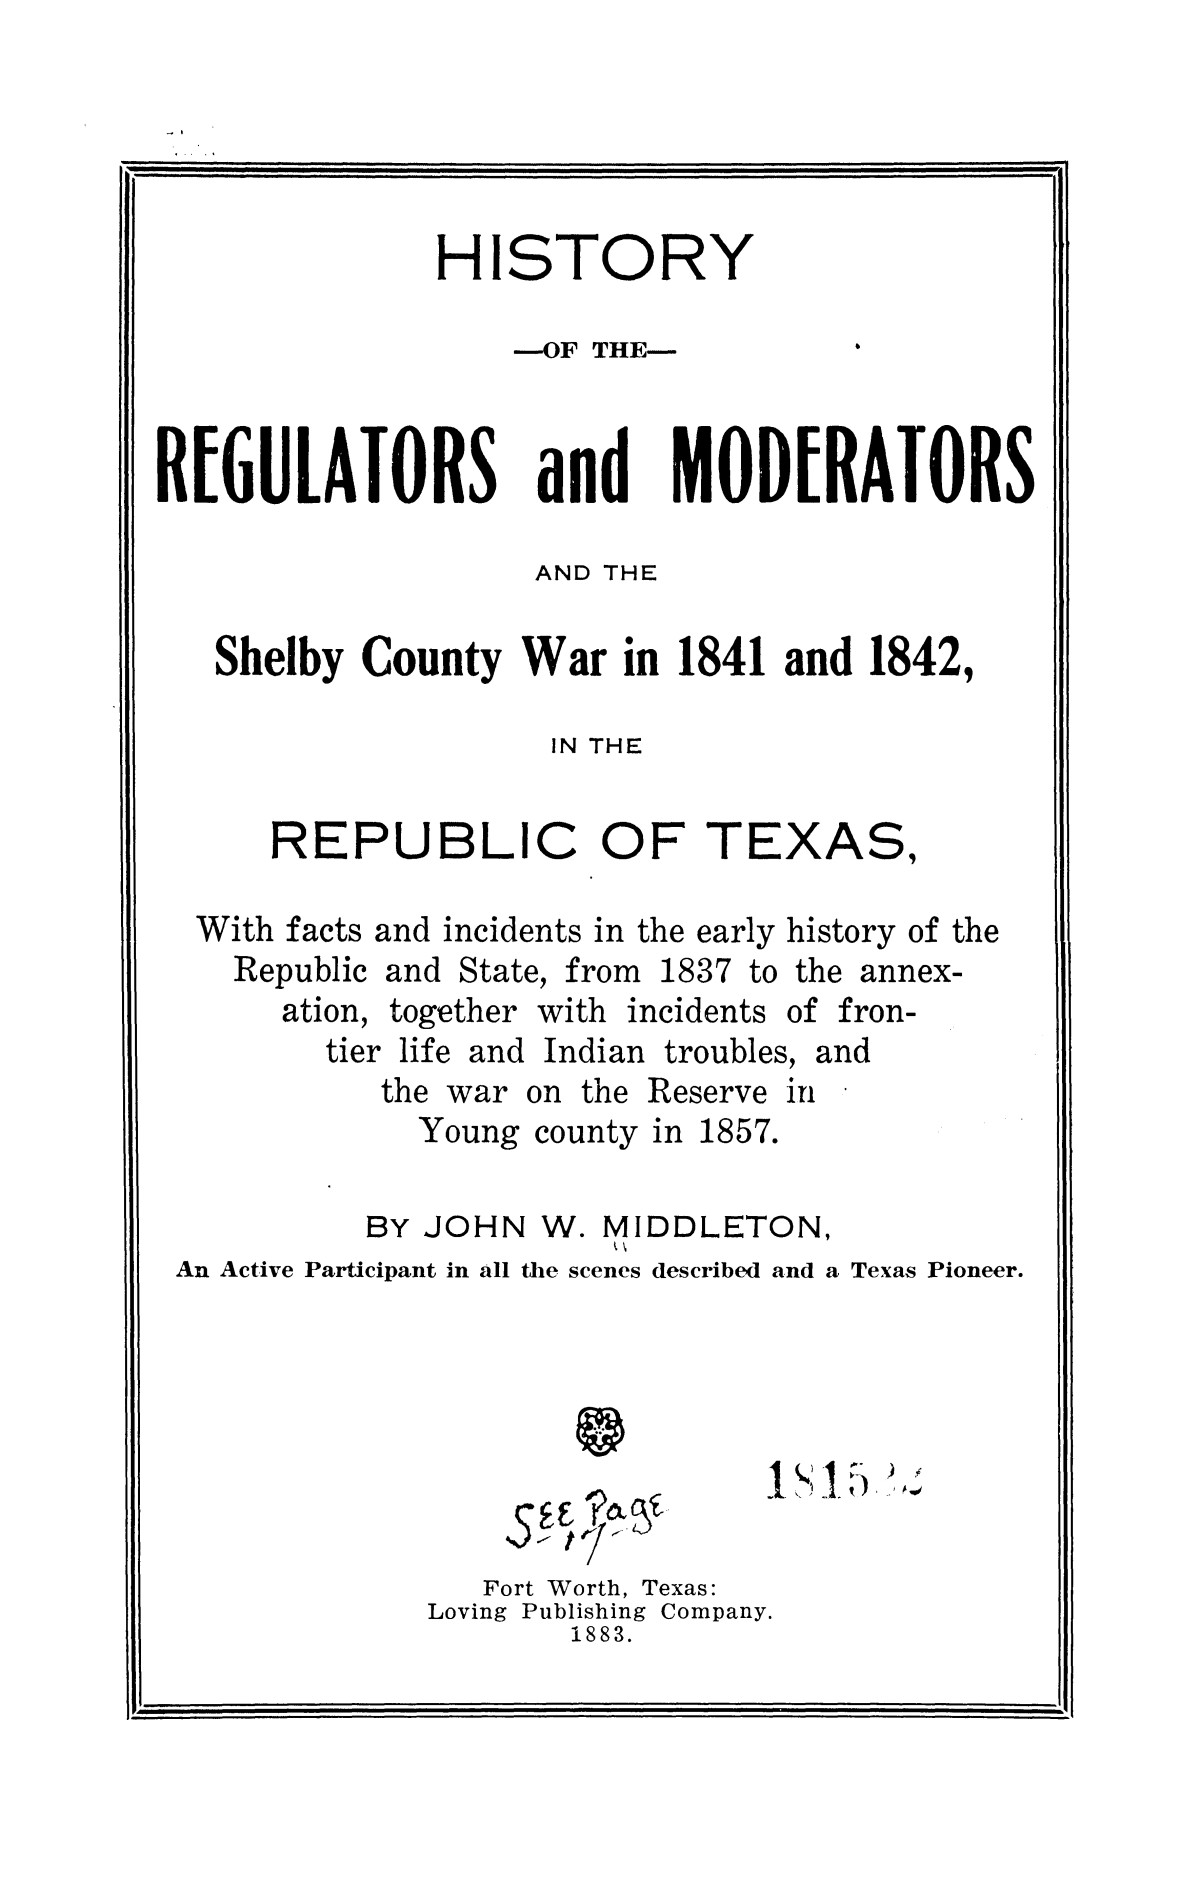 History of the regulators and moderators and the Shelby County war in 1841 and 1842, in the republic of Texas, with facts and incidents in the early history of the republic and state, from 1837 to the annexation, together with incidents of frontier life and Indian troubles, and the war on the reserve in Young County in 1857                                                                                                      [Sequence #]: 3 of 42